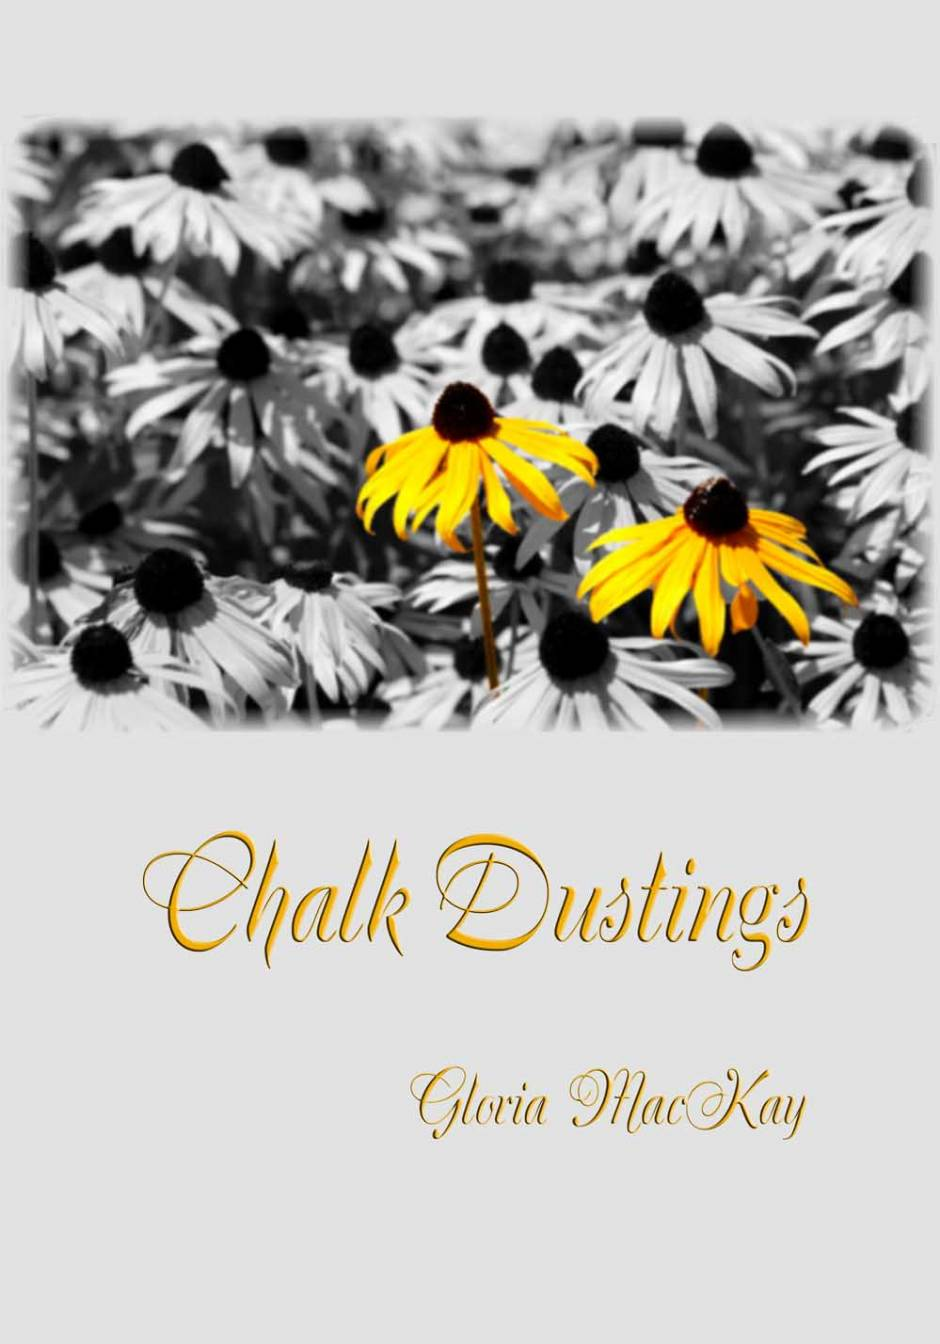 Chalk Dustings